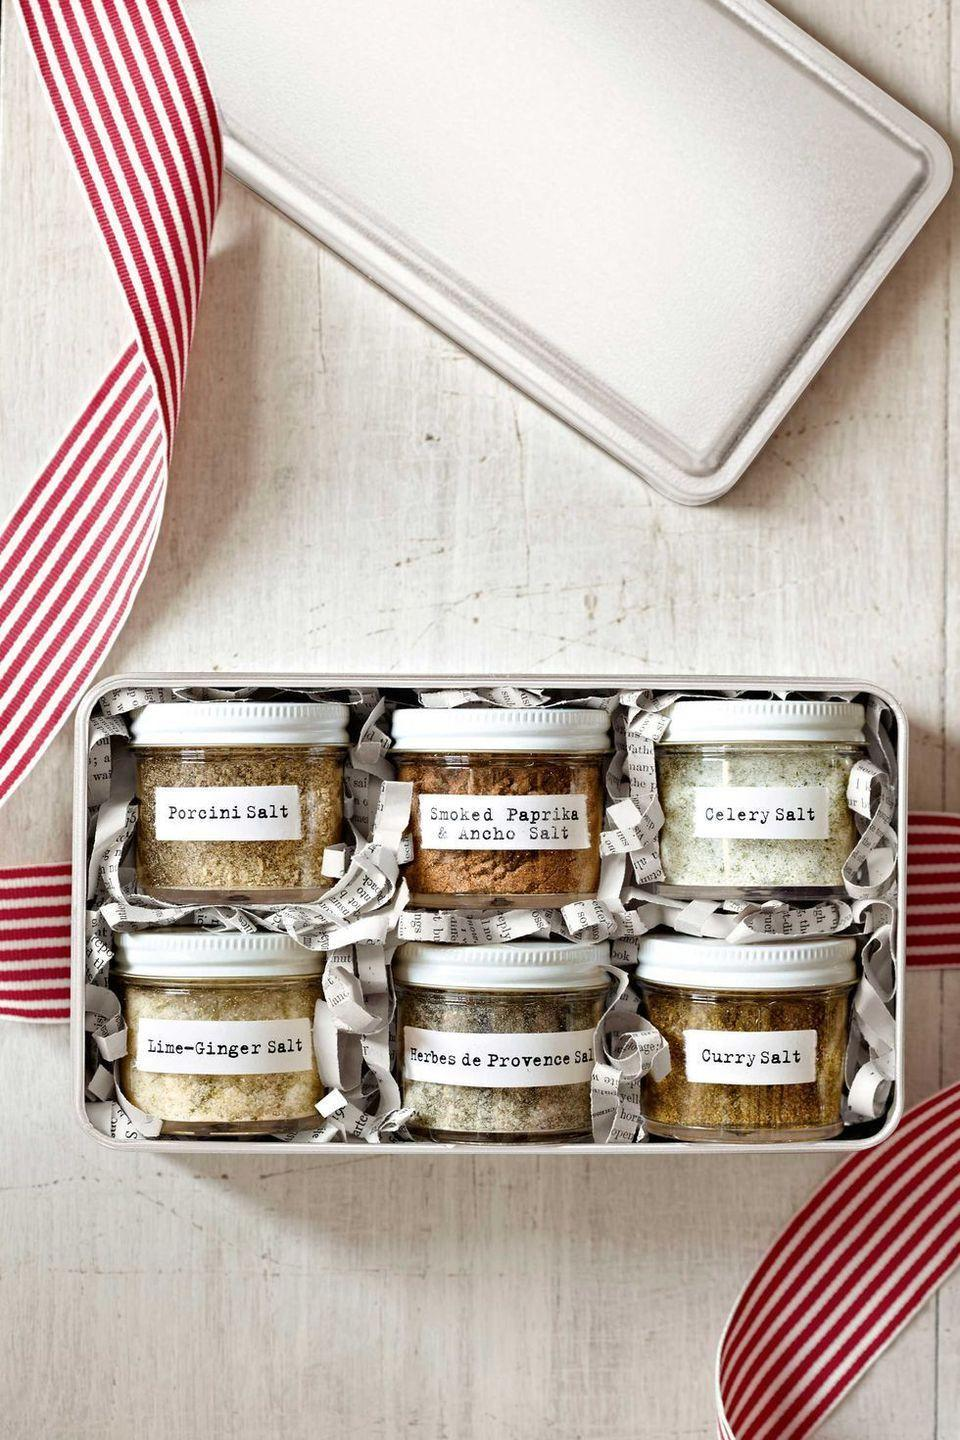 """<p>Add even more flavor to your mom's kitchen by bottling up six different salt flavors — curry salt, celery salt, to name a few — and placing them in a gift box. If she tends to use more aromatic spices, you can always trade salt for just about anything else that her spice cabinet is lacking. </p><p><a class=""""link rapid-noclick-resp"""" href=""""https://www.amazon.com/SimpleHouseware-Spice-Bottles-label-Set/dp/B01LXKKUY8/?tag=syn-yahoo-20&ascsubtag=%5Bartid%7C10055.g.2412%5Bsrc%7Cyahoo-us"""" rel=""""nofollow noopener"""" target=""""_blank"""" data-ylk=""""slk:SHOP SPICE JARS"""">SHOP SPICE JARS</a></p>"""